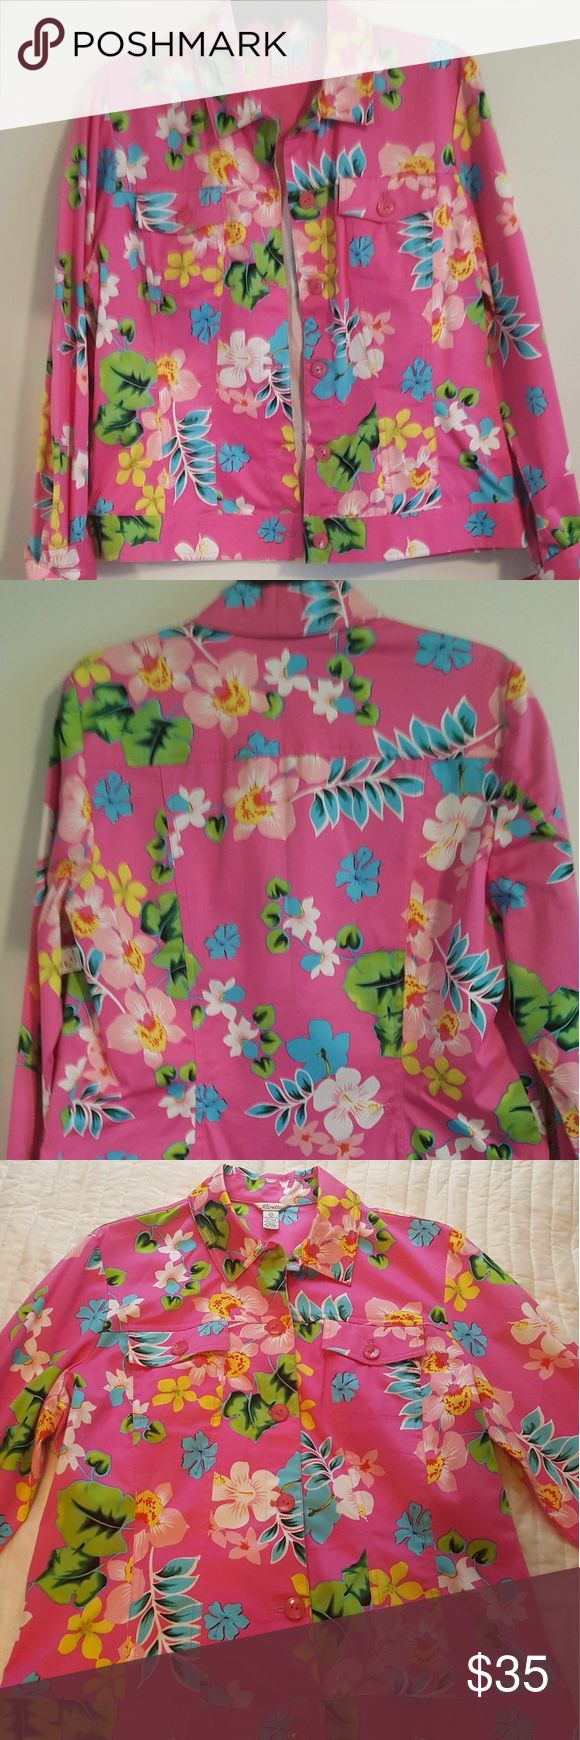 Vintage Floral Jacket Great lightweight pink jacket with floral pattern for anyone who loves the Lily Pulitzer style. Mirette Jackets & Coats